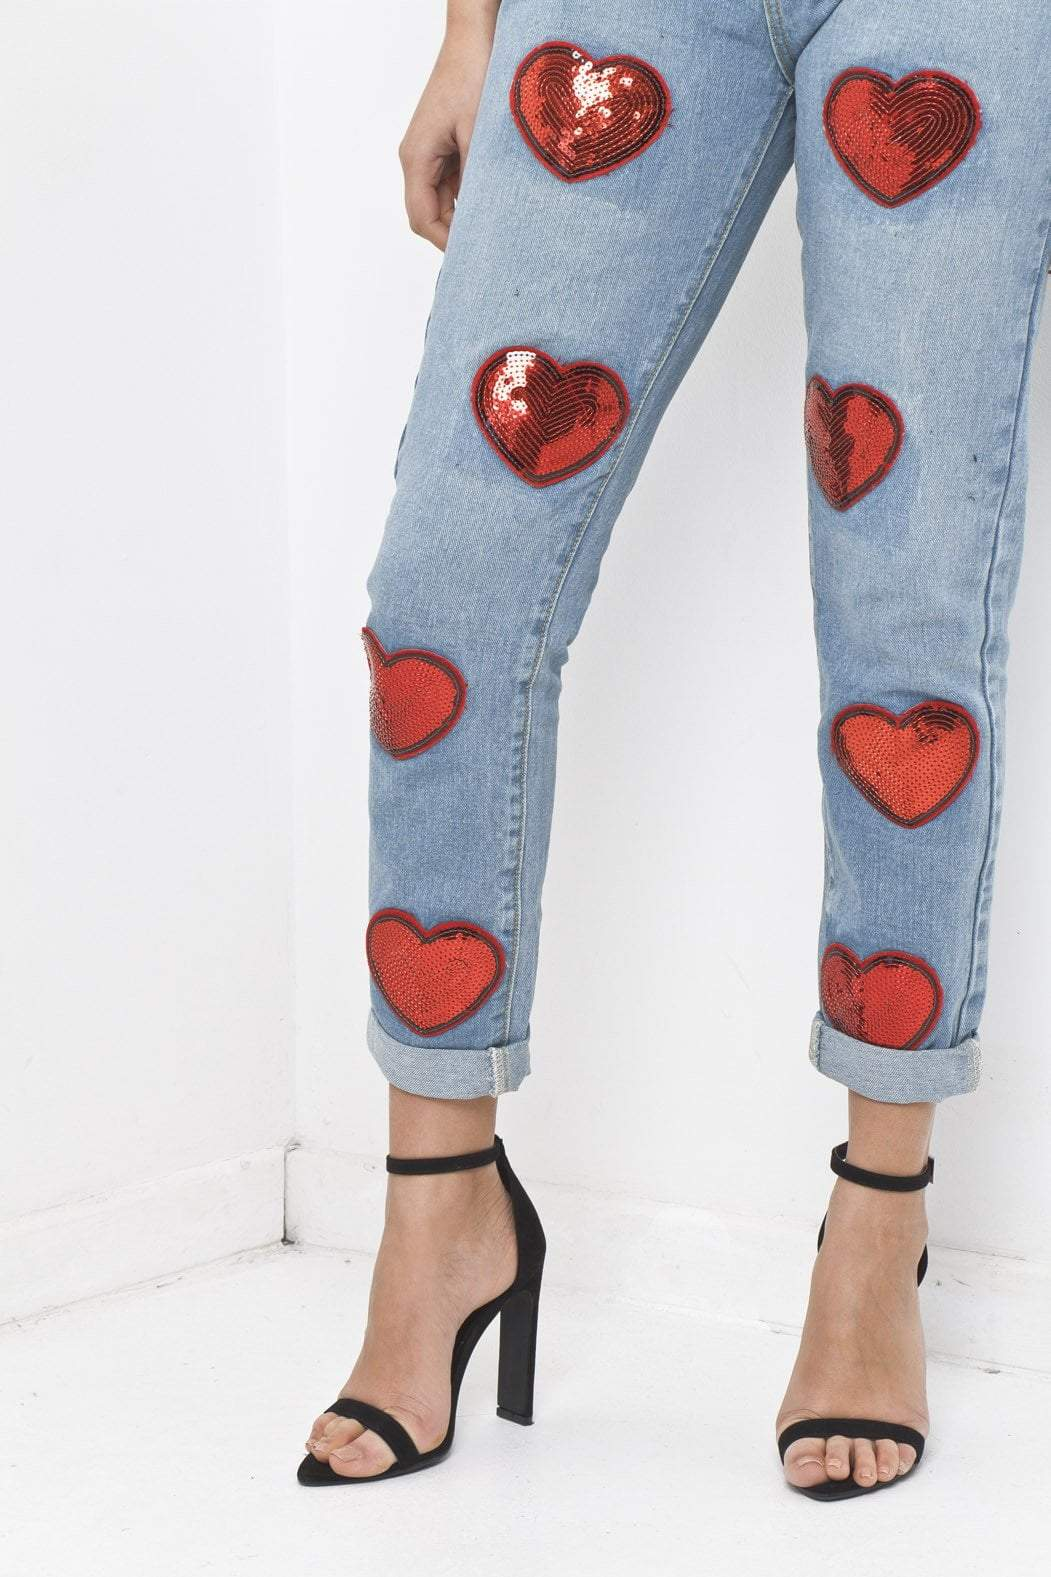 Liquor n Poker - LAX MOM Festival Jeans with love hearts - Liquor N Poker  Liquor N Poker